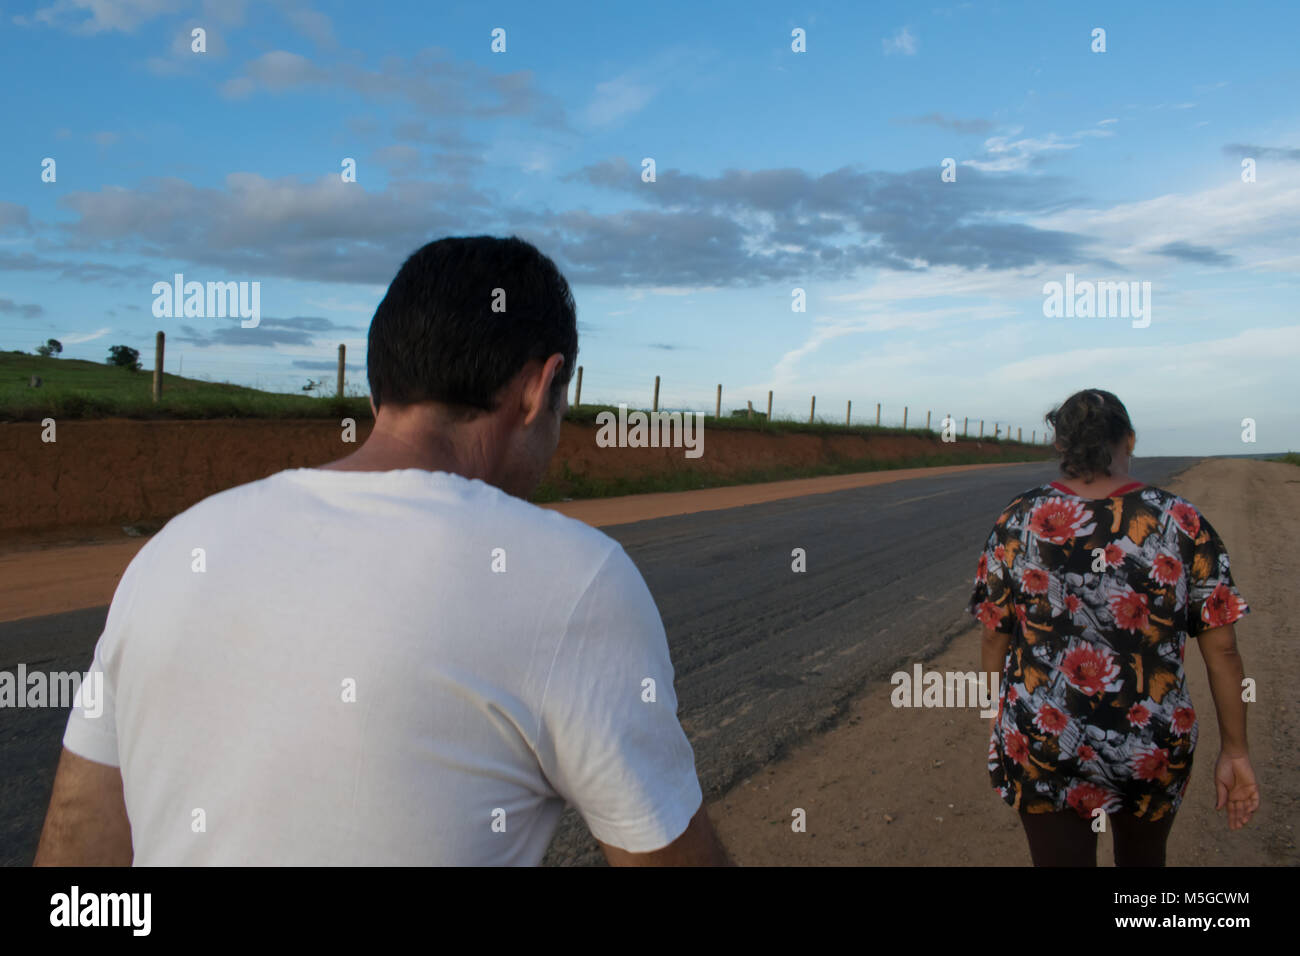 A man and a woman walking alone on the road - Stock Image